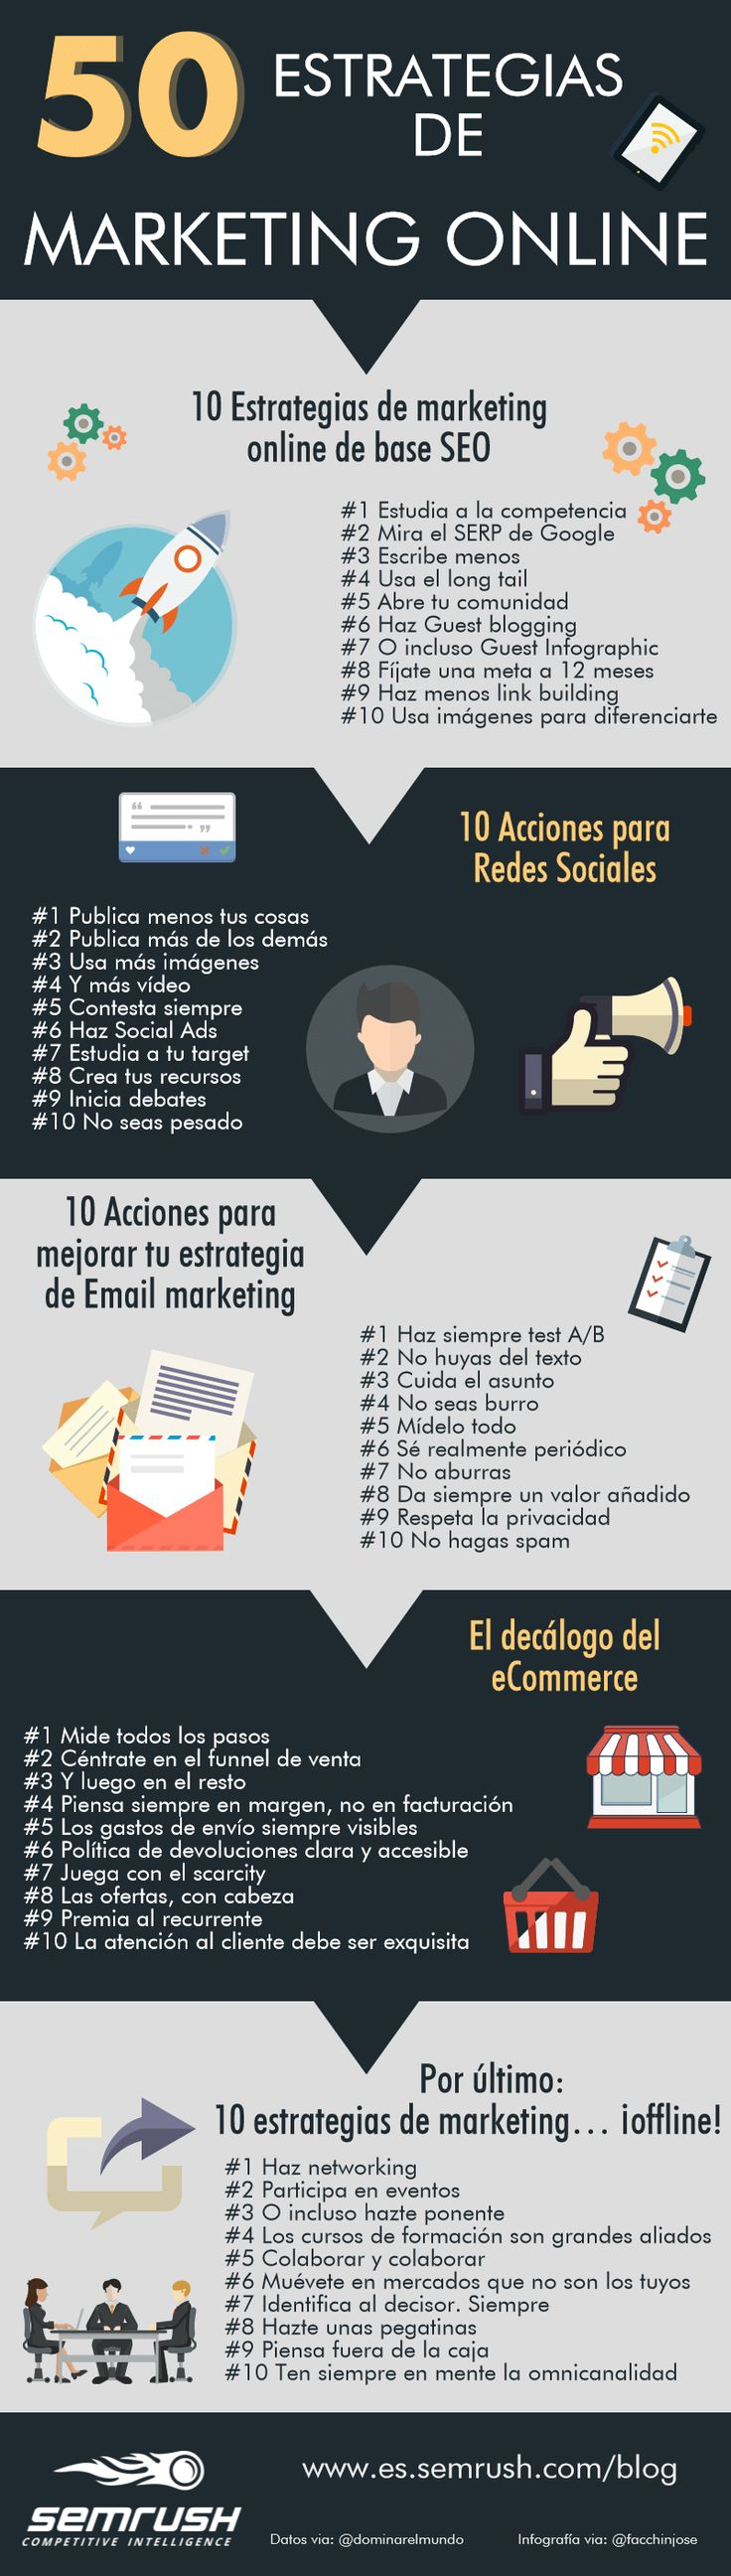 50 estrategias de marketing online para tu proyecto | SEMrush blog